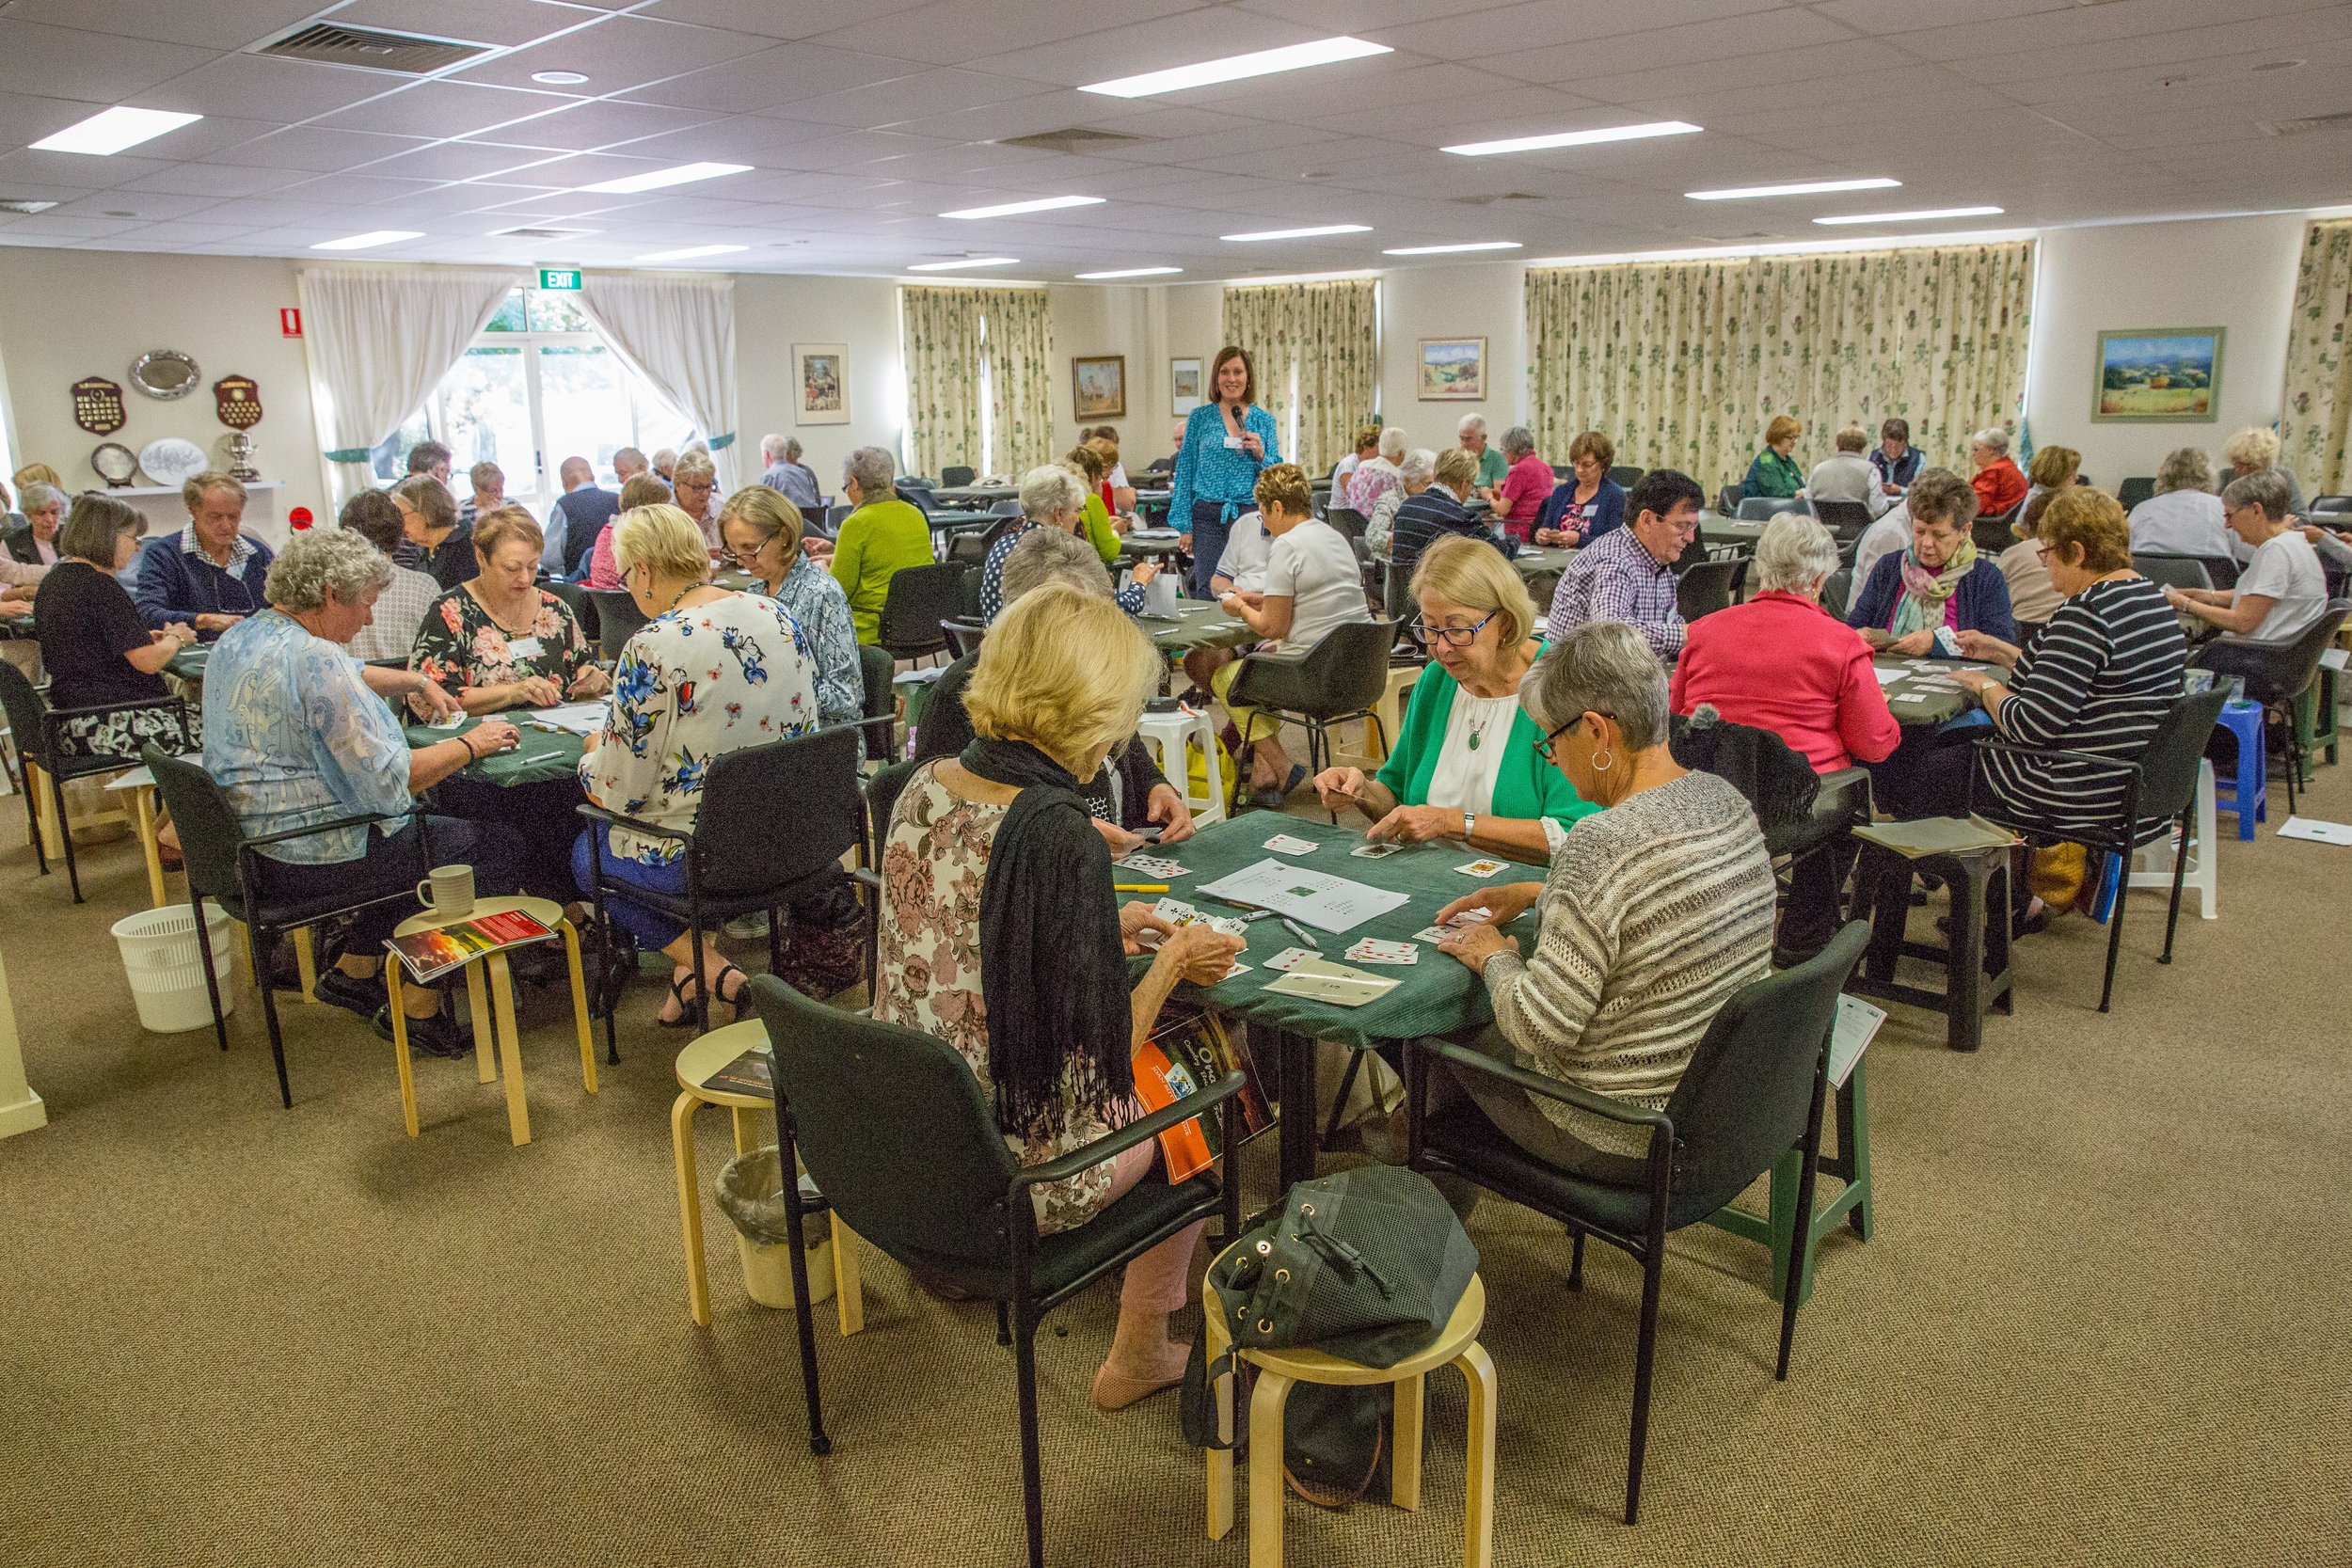 We had a record number of tables for games and lessons at the Orange Country Bridge Festival.